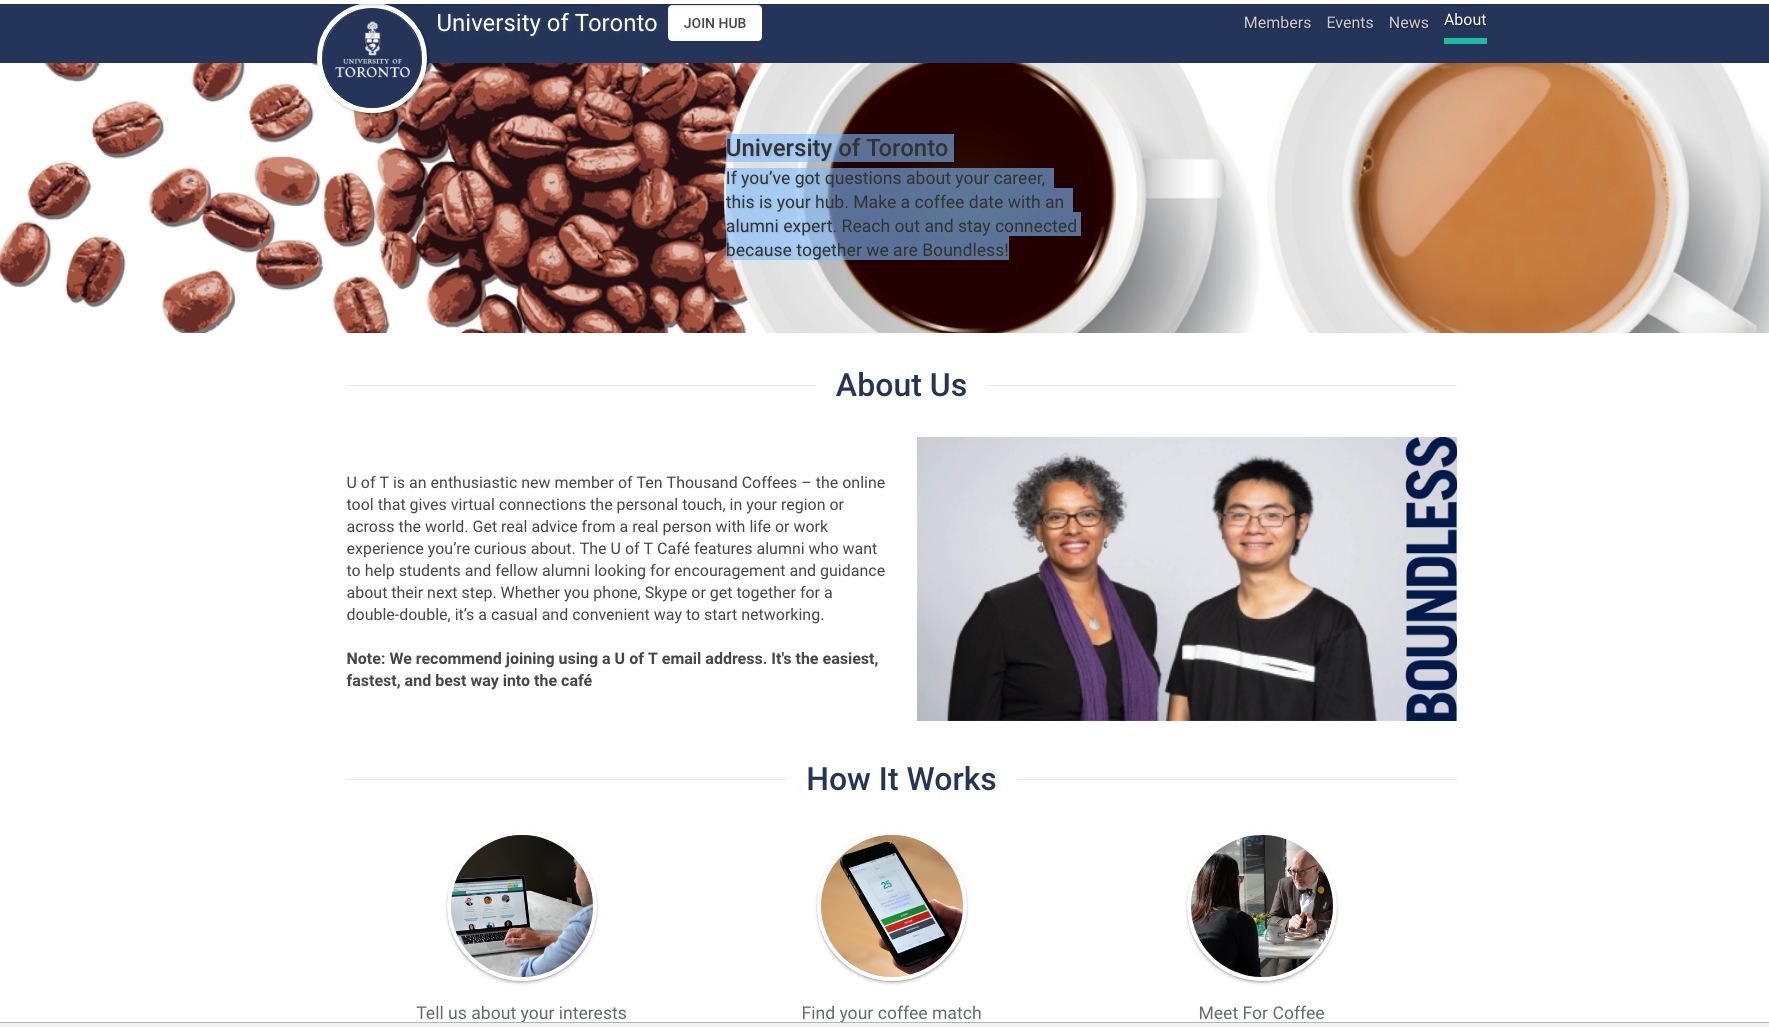 Ten Thousand Coffee - UofT Networking Opportunity